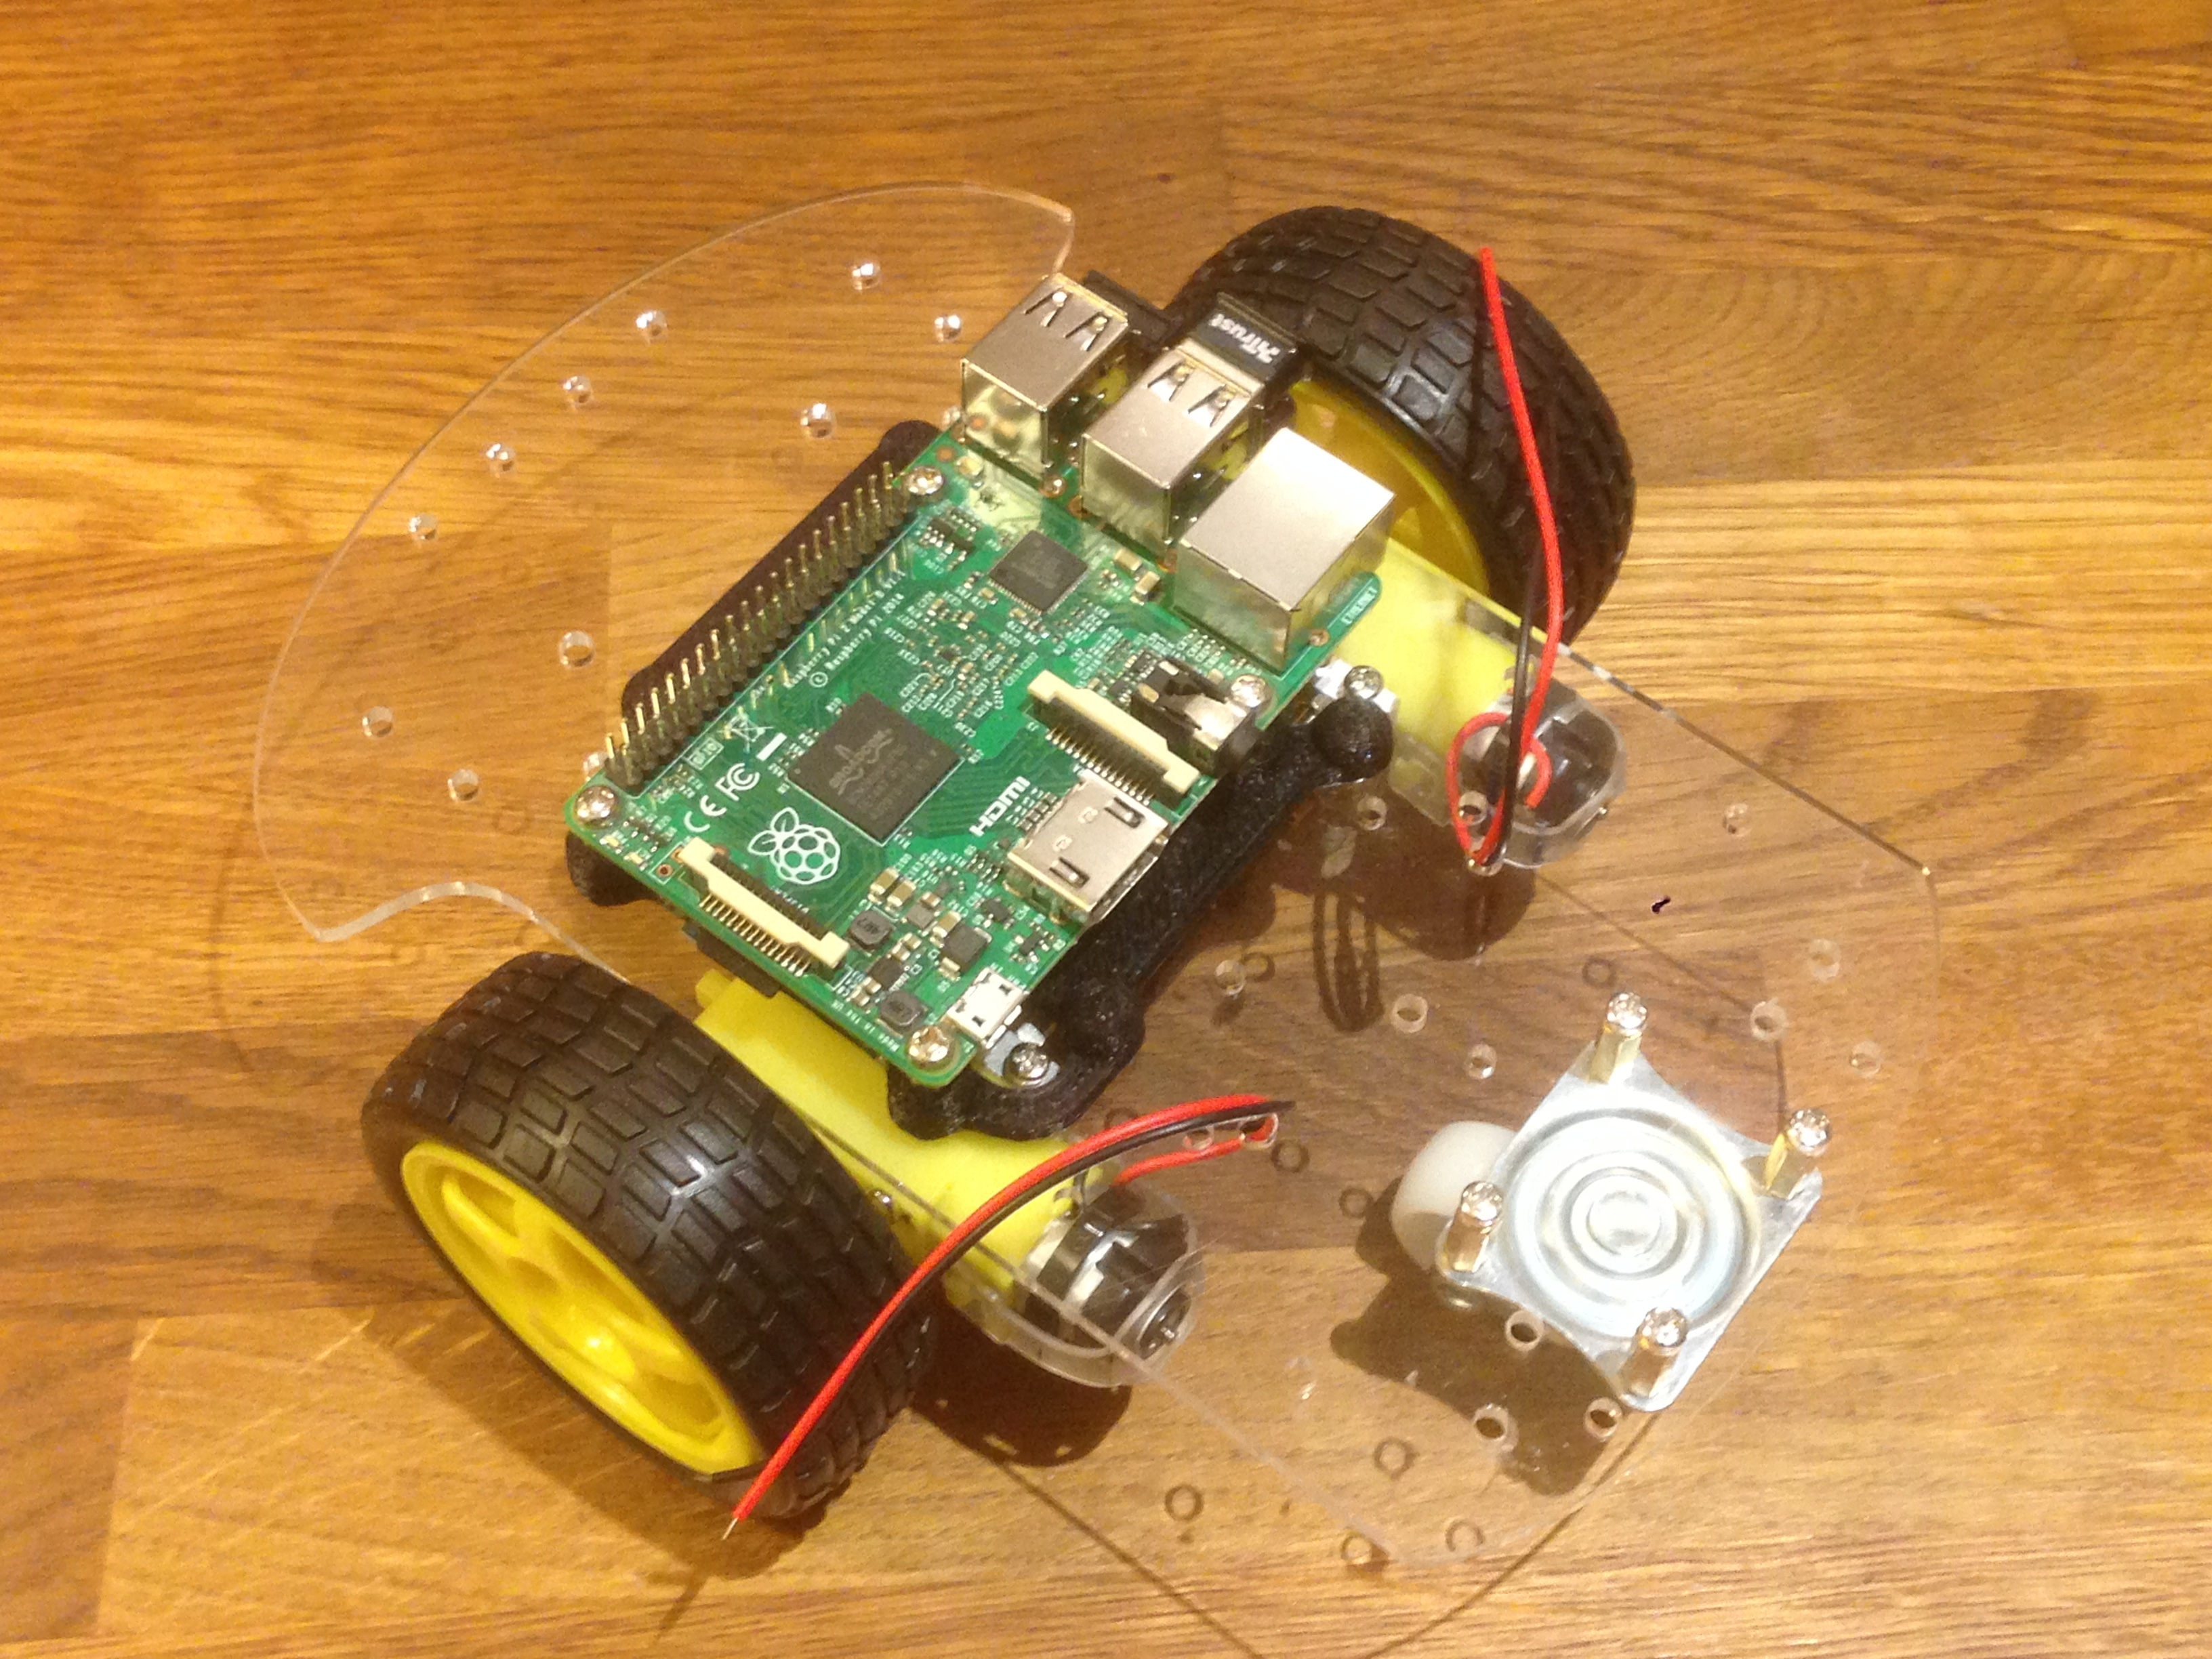 Raspberry Pi 2 mount for 2 wheel robot chassis by stuartm - Thingiverse